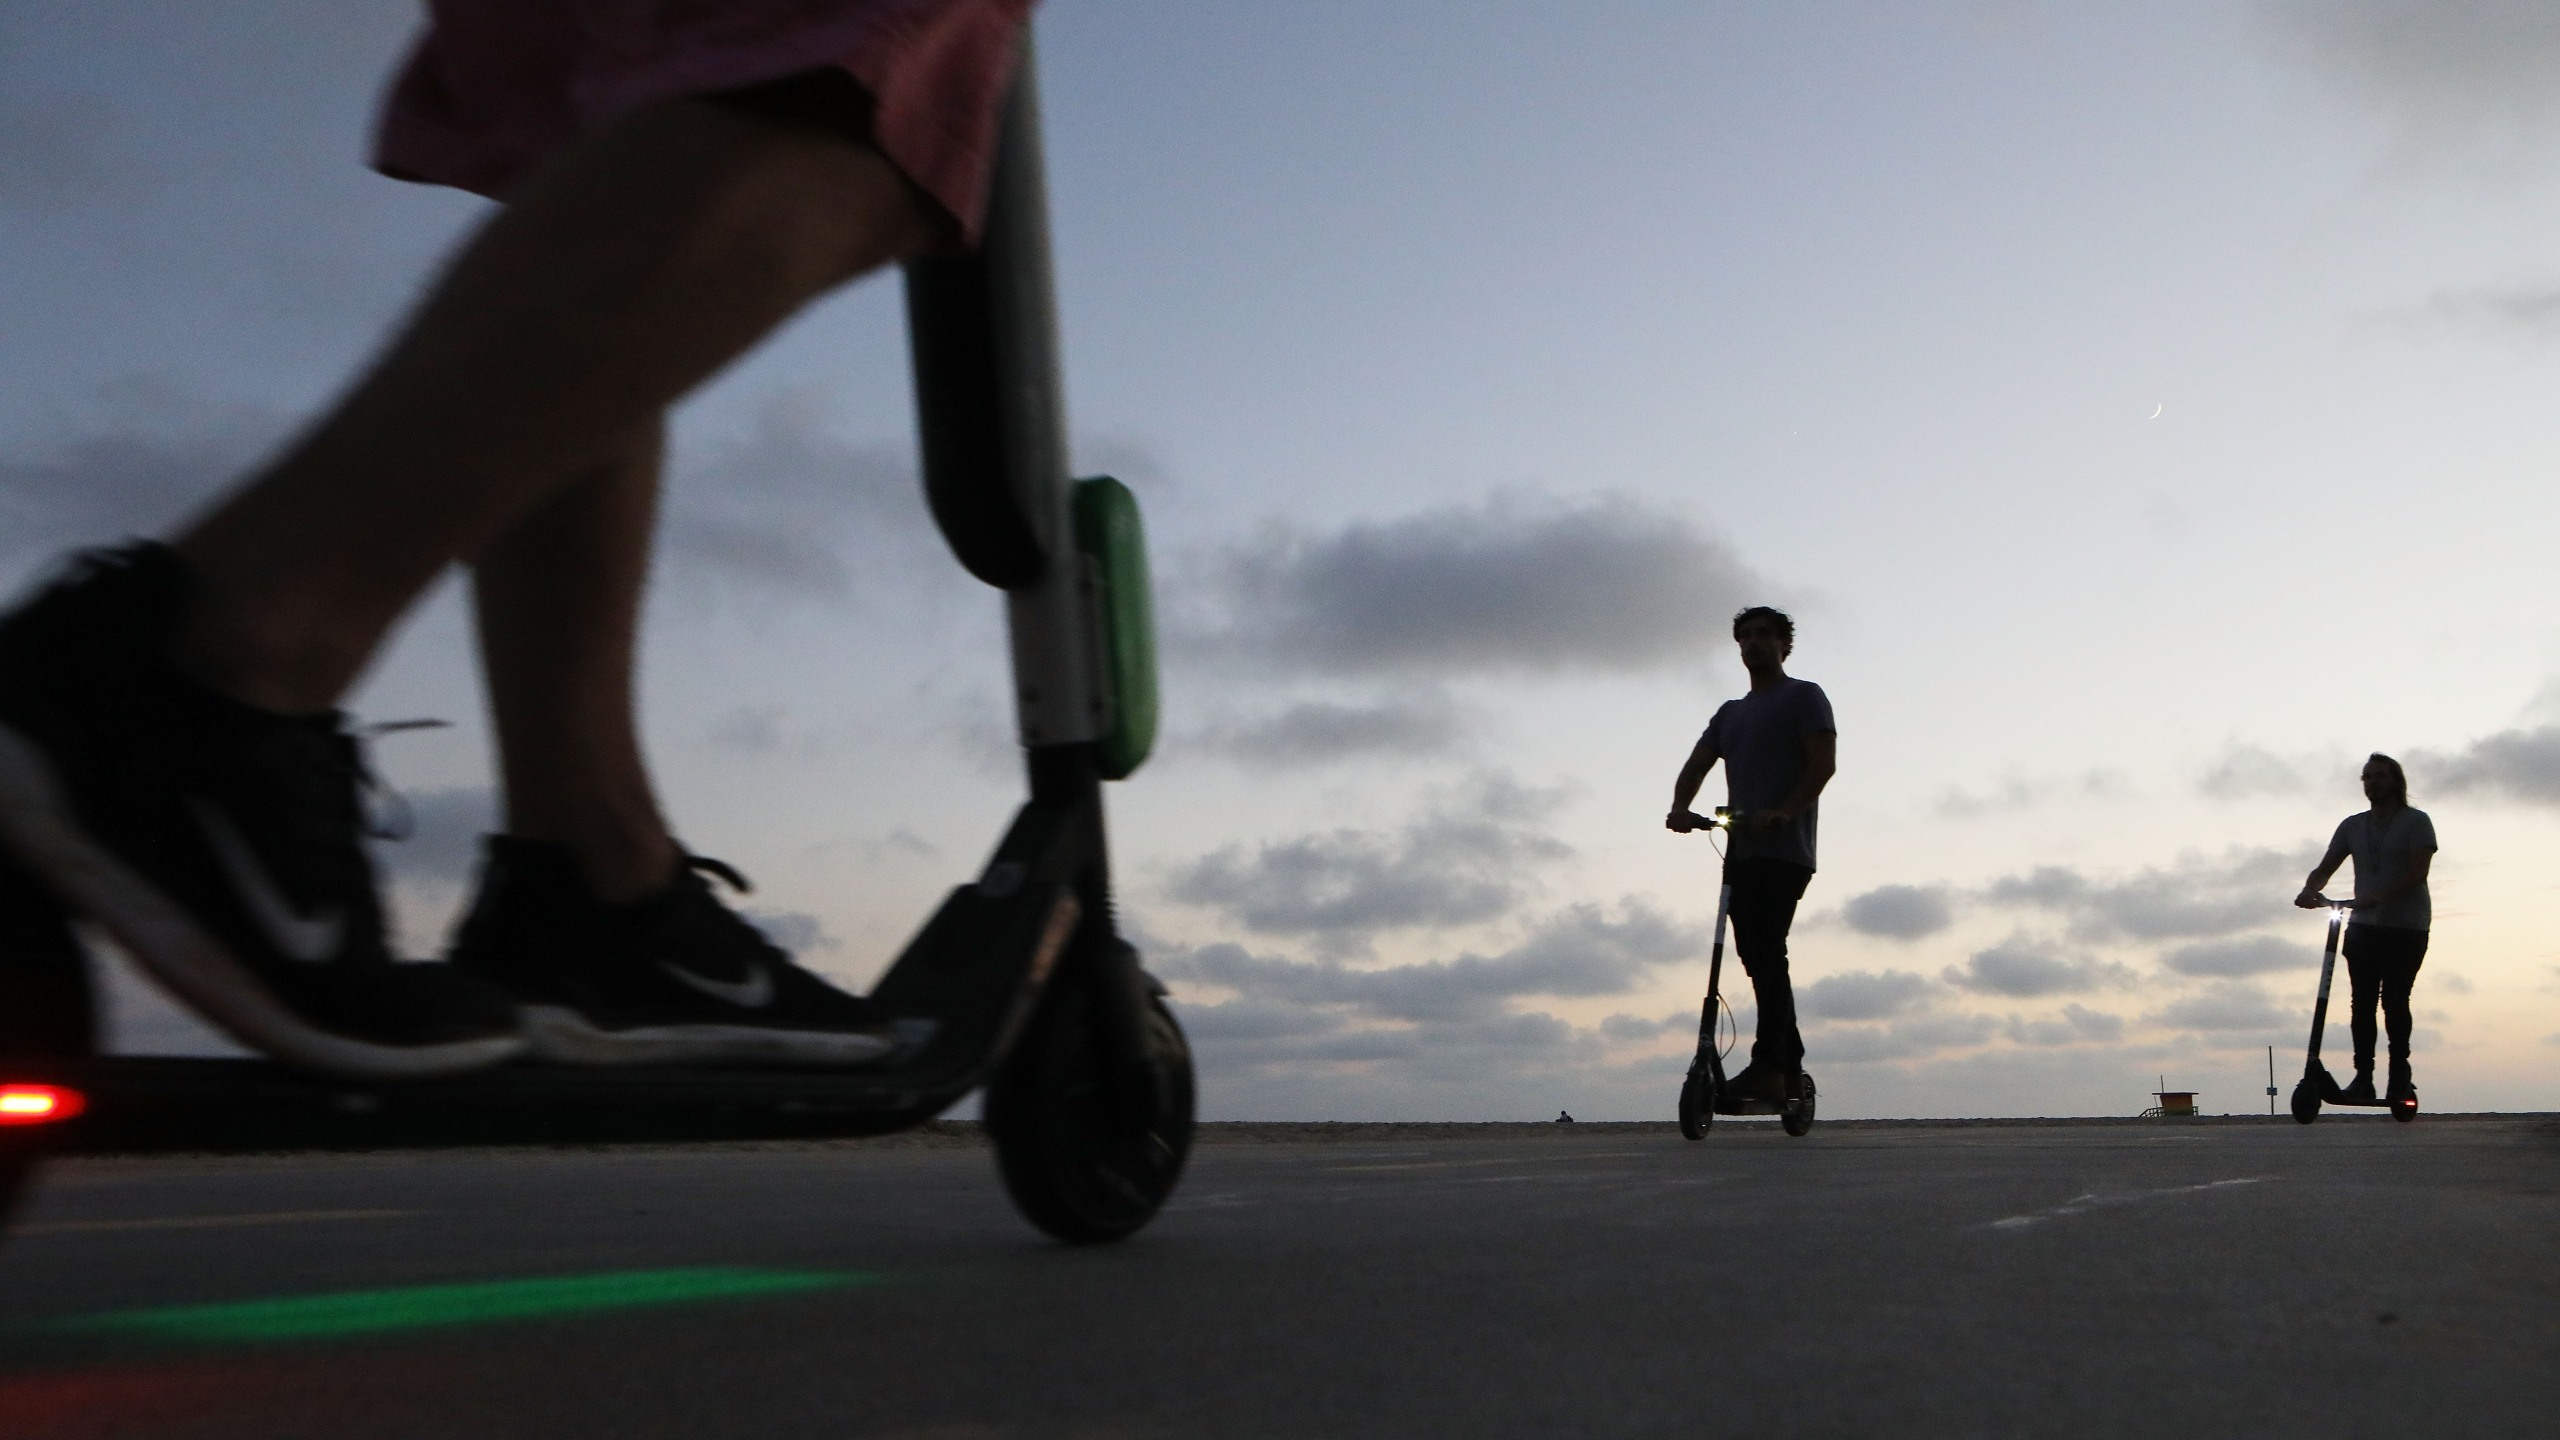 People ride shared dockless electric scooters along Venice Beach on August 13, 2018 in Los Angeles. California. (Mario Tama/Getty Images)